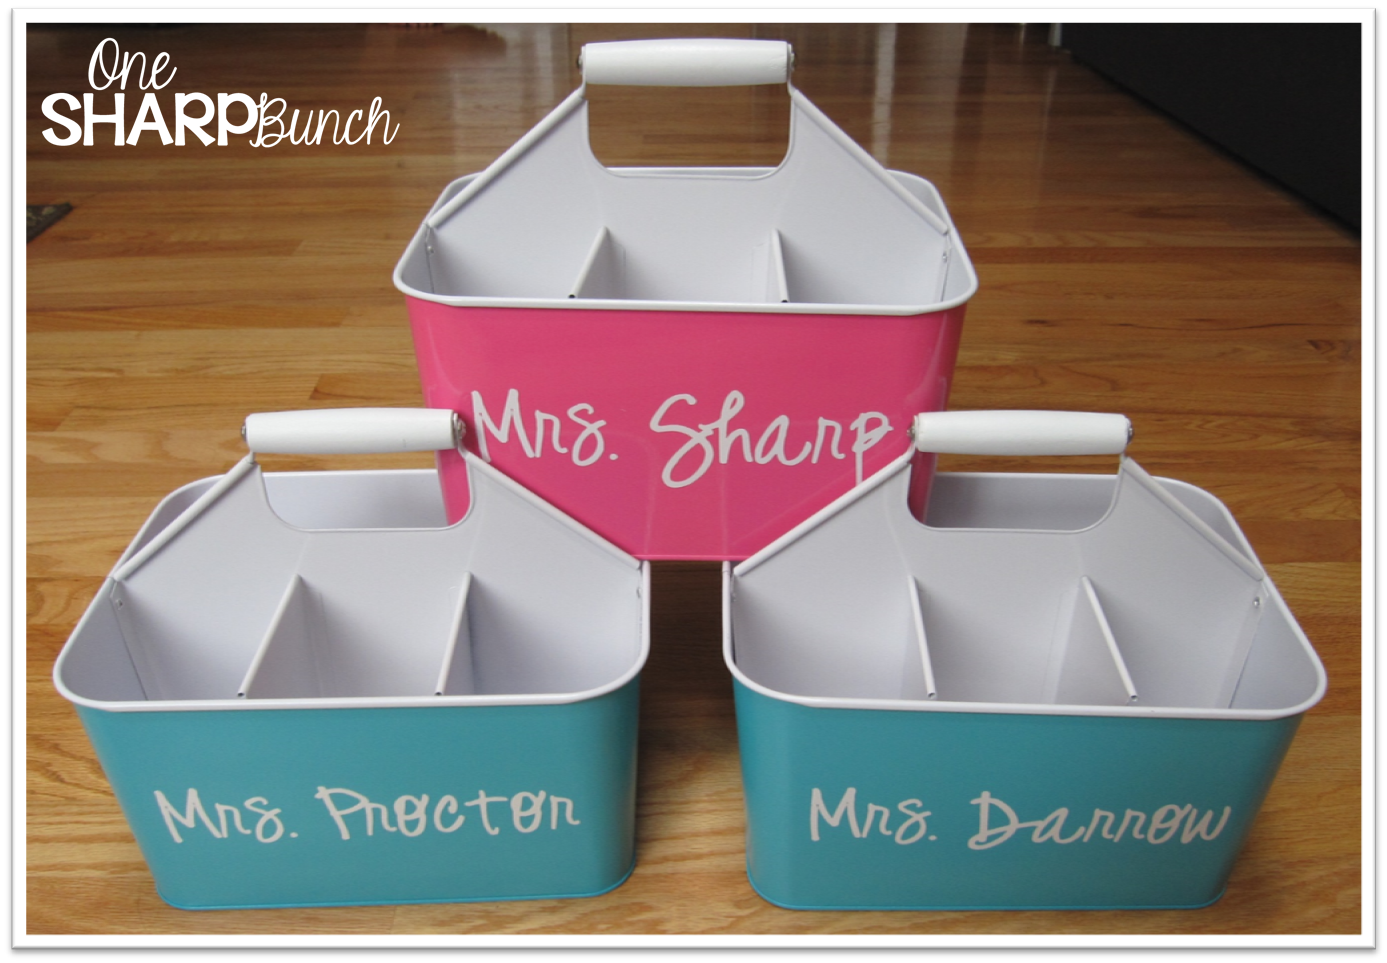 http://onesharpbunch.blogspot.com/2014/07/monday-made-it-personalized-caddies.html